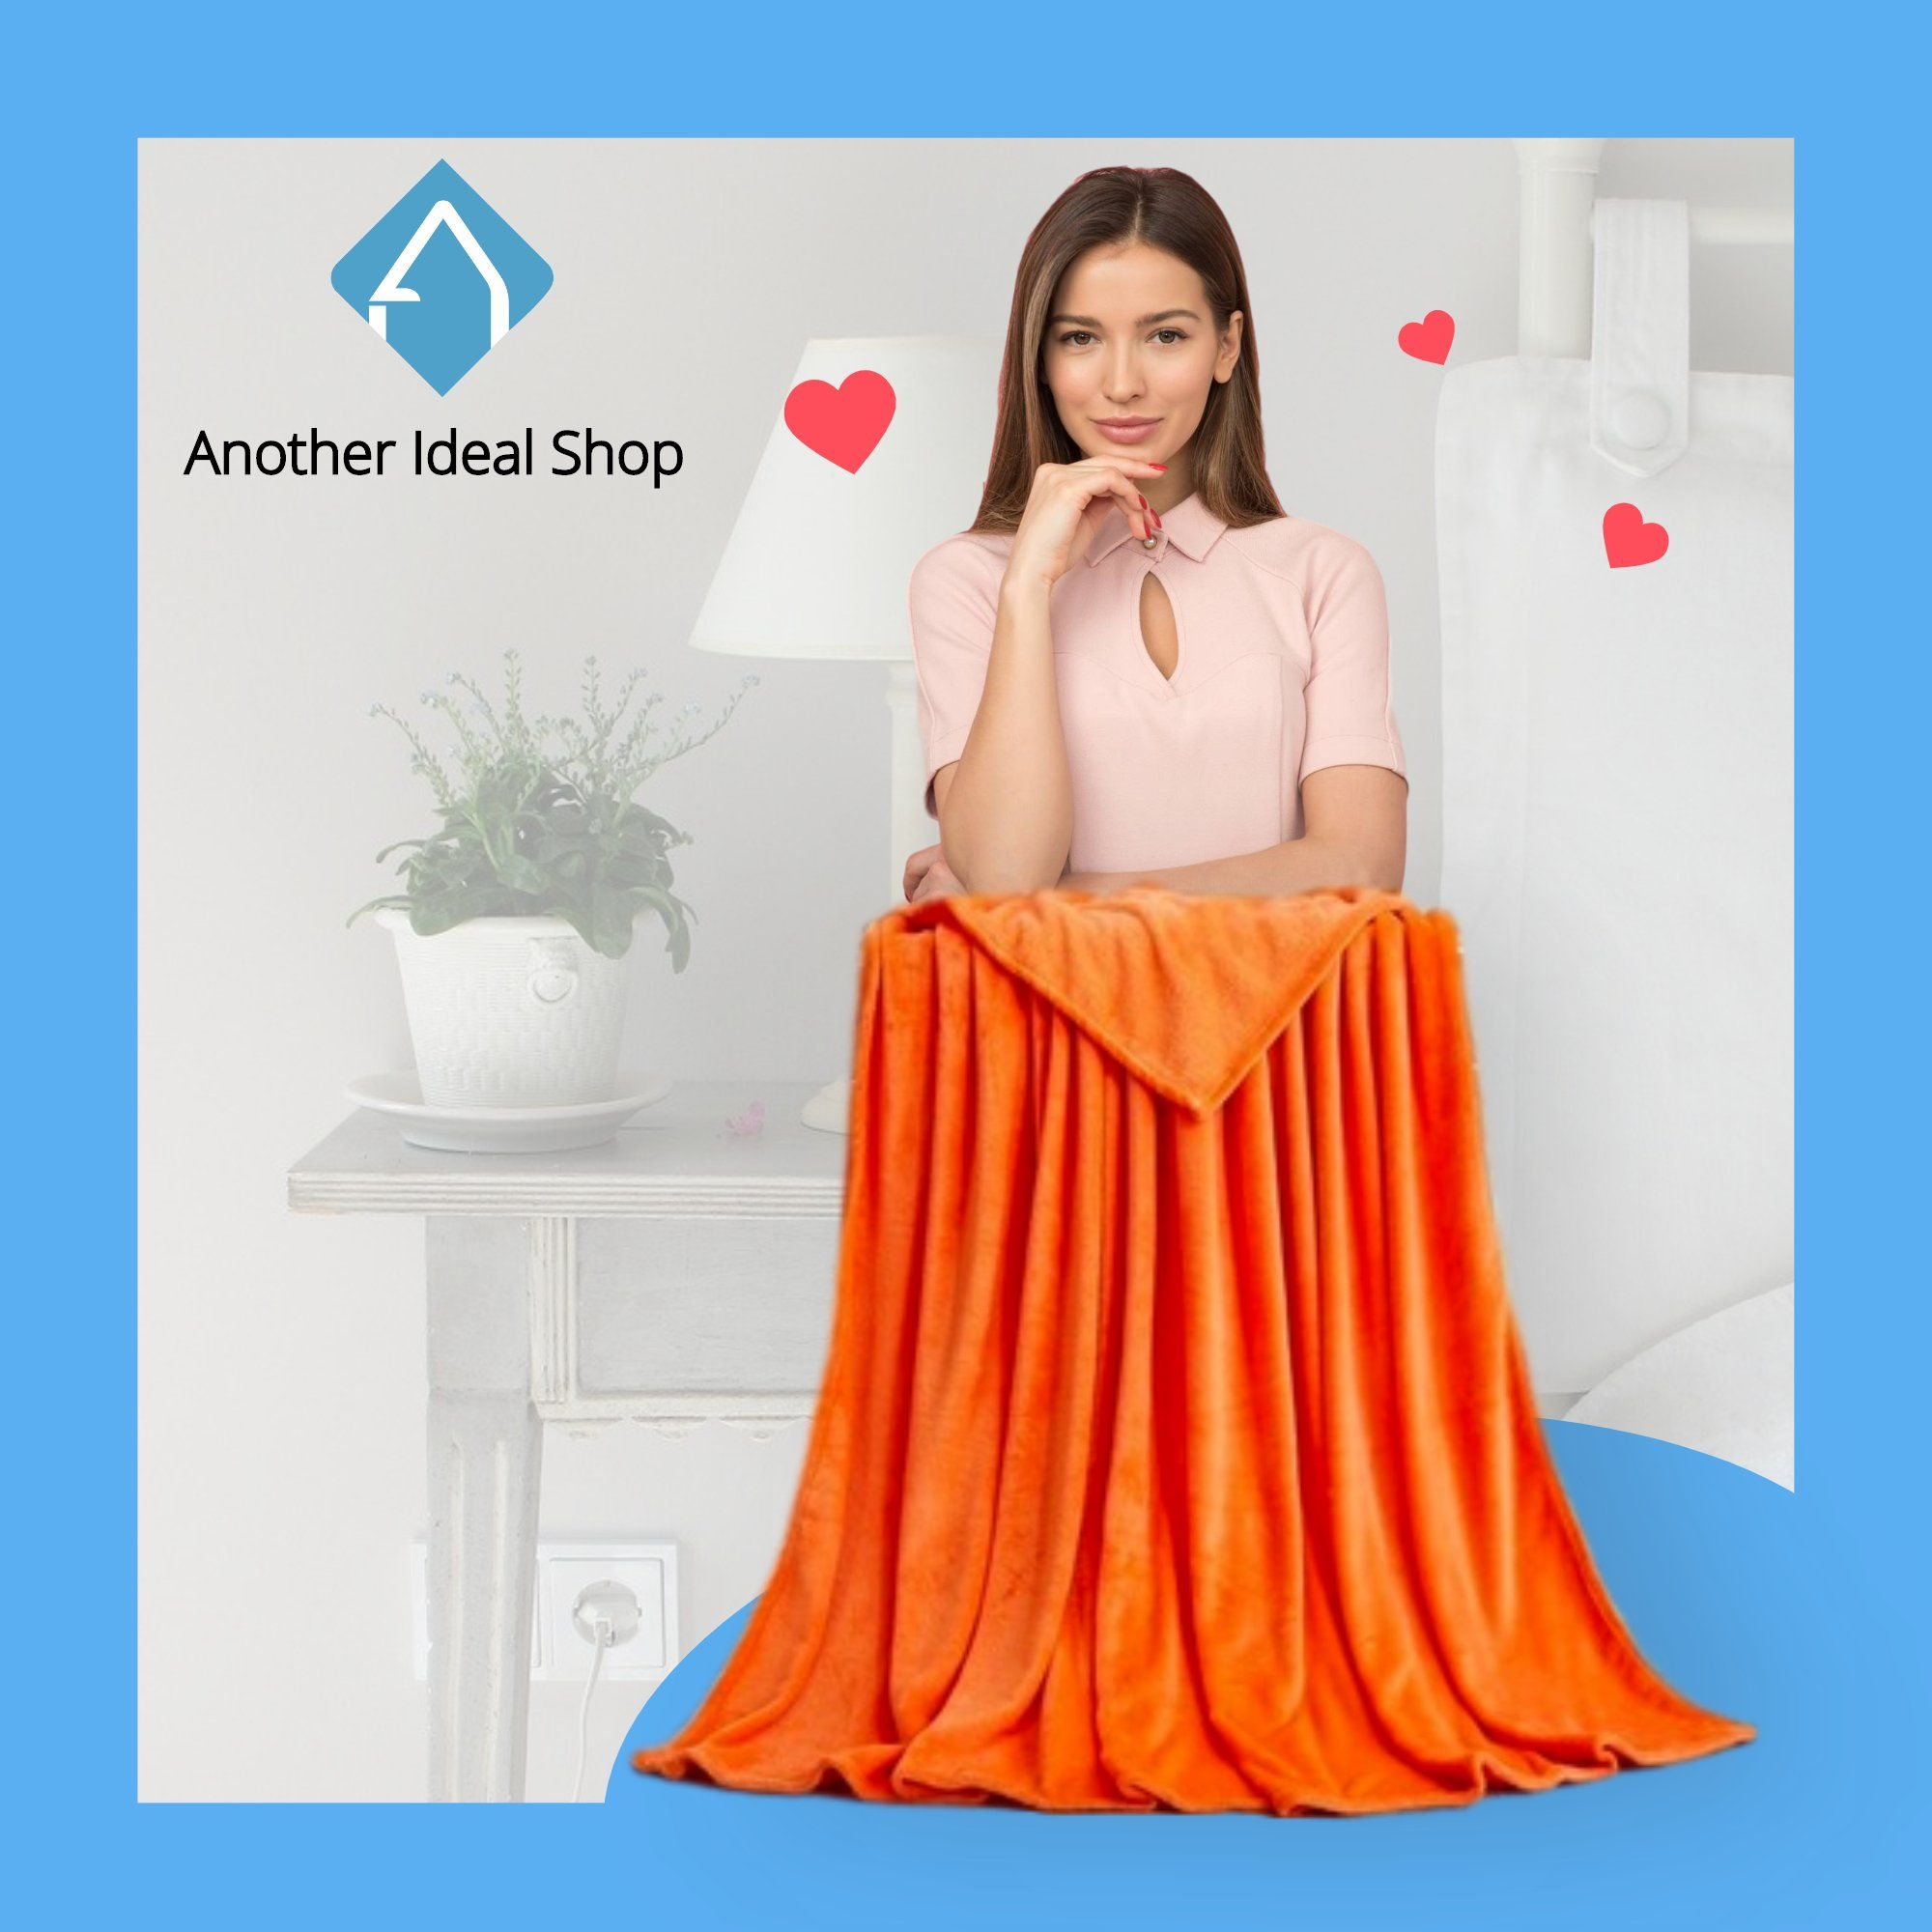 Luxury Weighted Blanket Another Ideal Shop 70cm x 100cm Orange